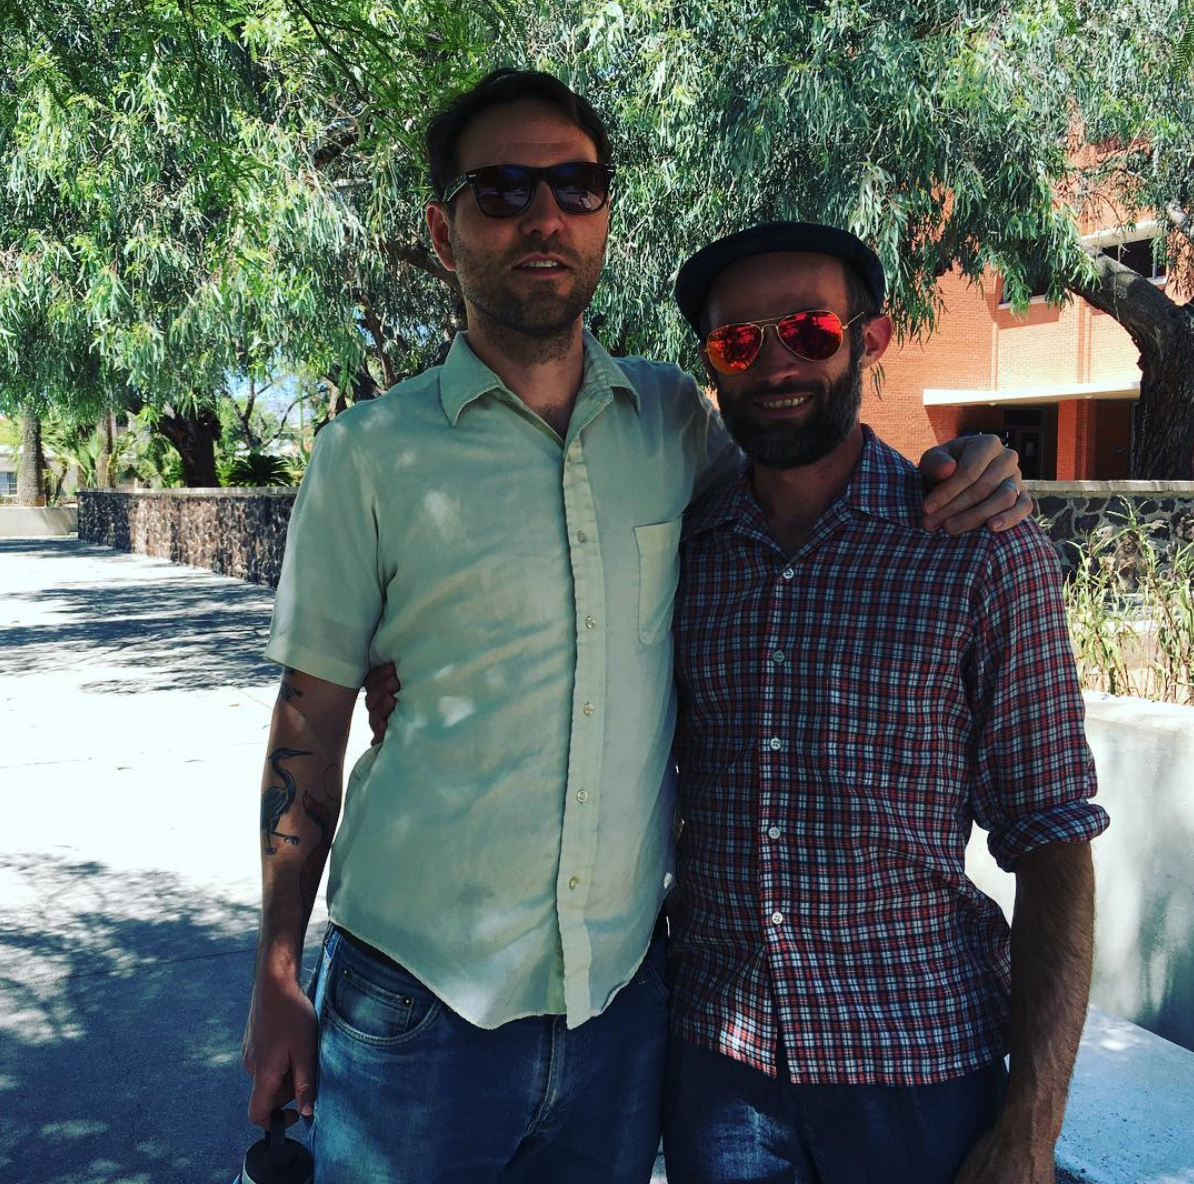 Joshua Marie Wilkinson and Abraham Smith in Tucson 2016